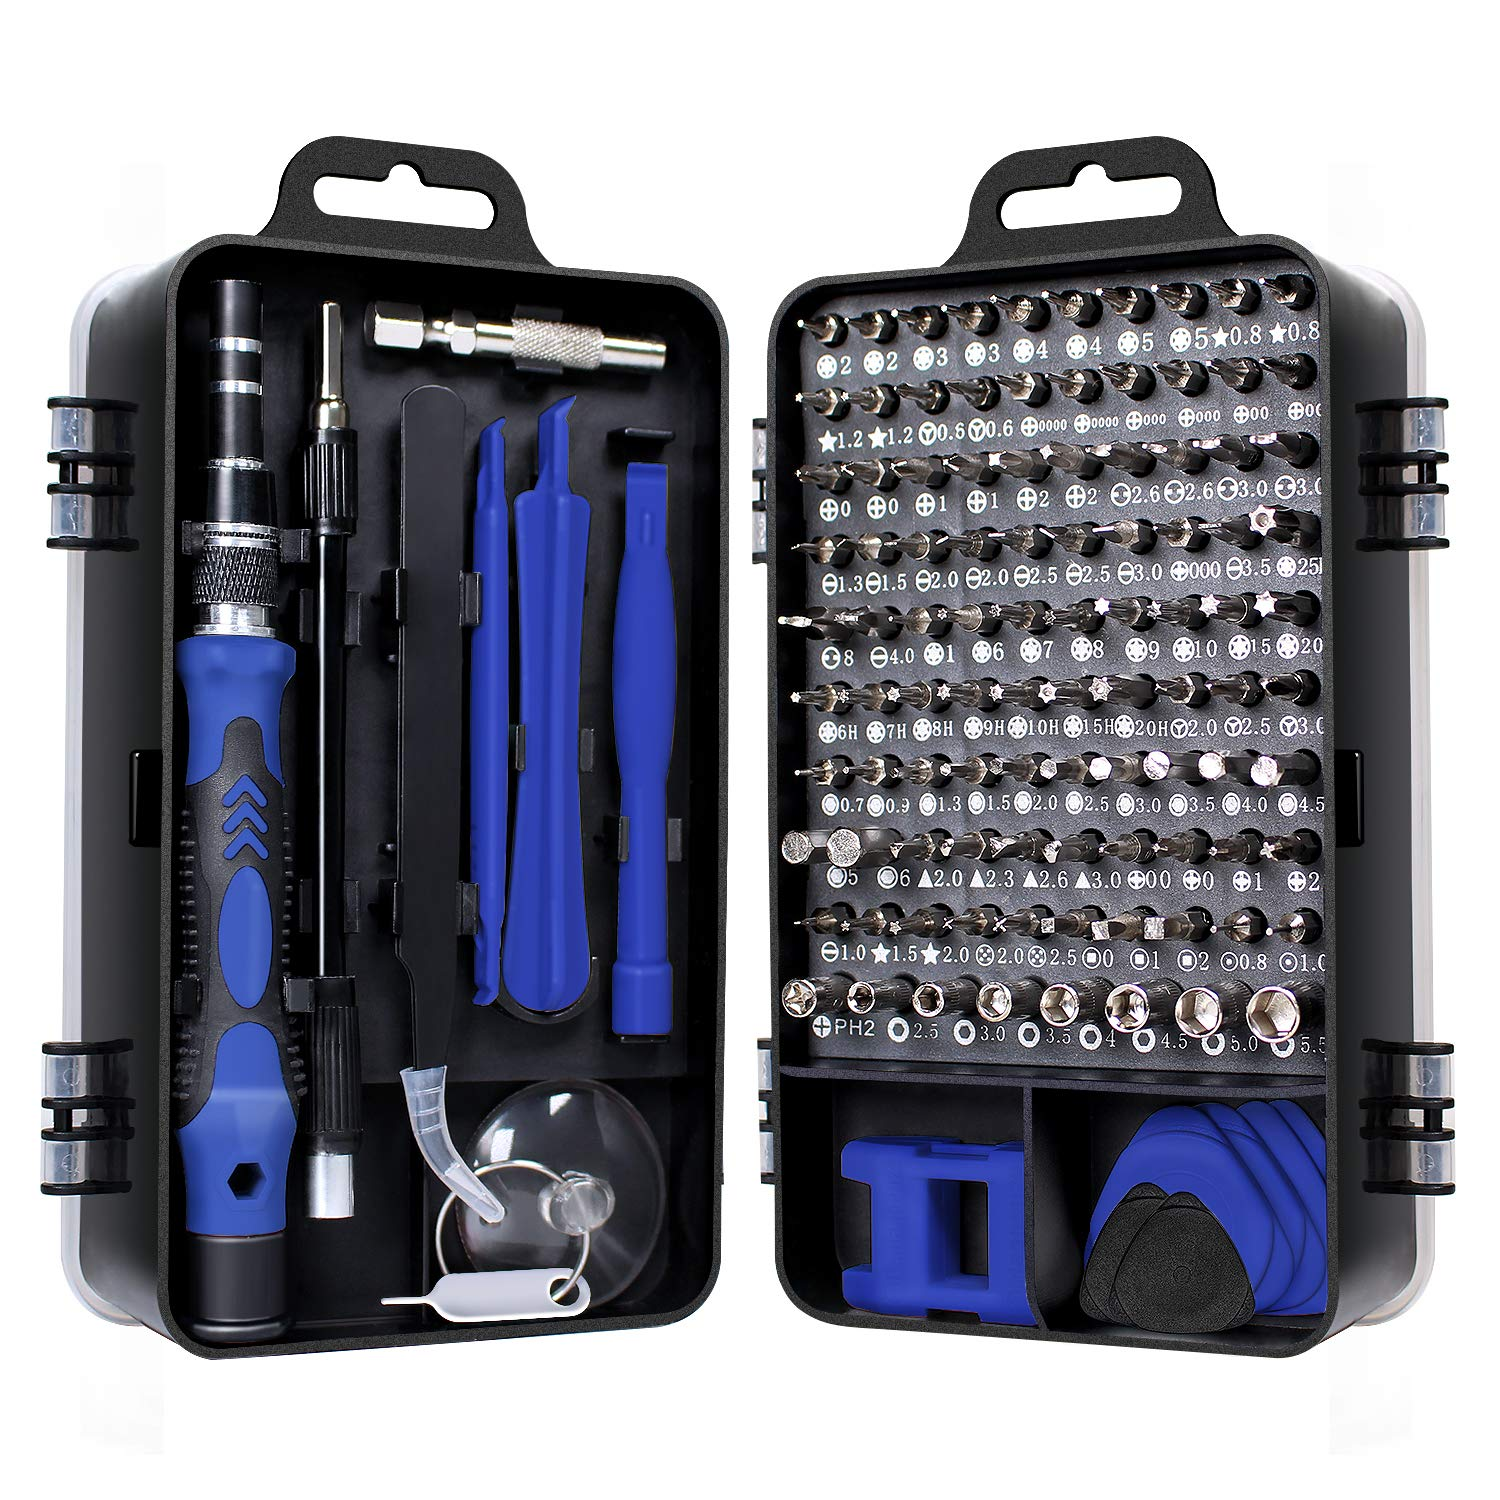 Gocheer precision screwdriver kit